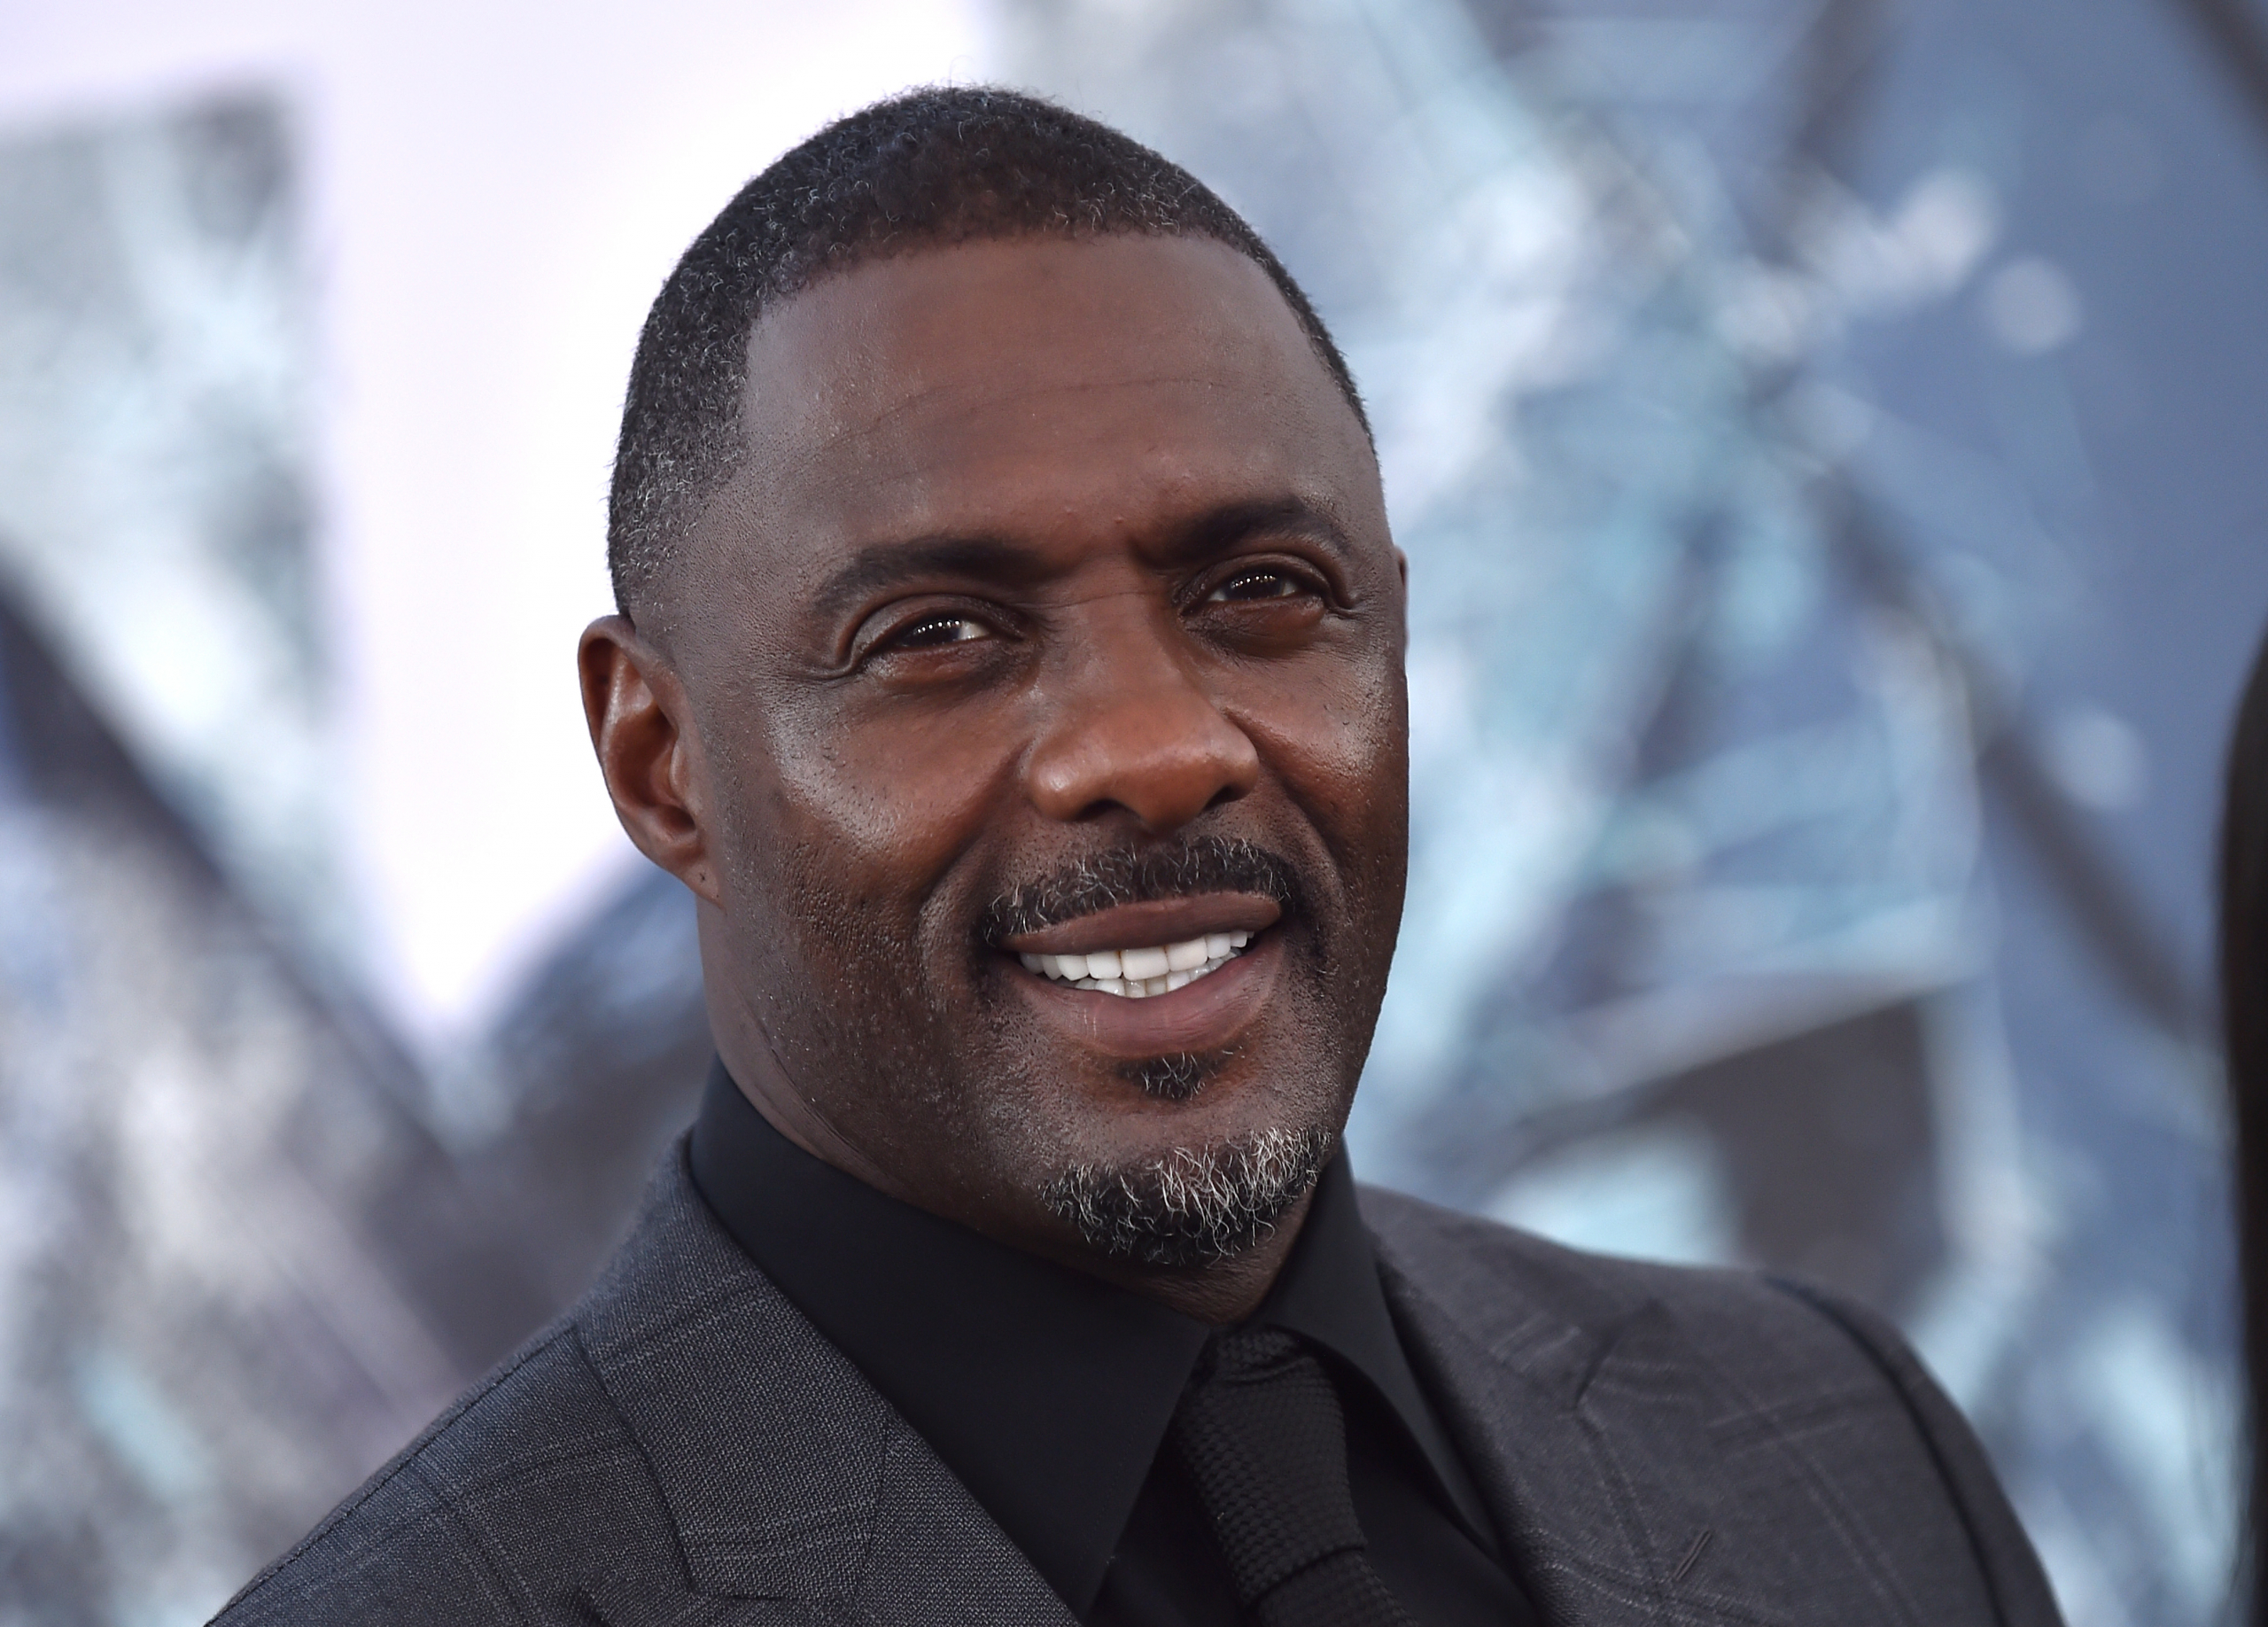 Idris Elba Afraid To Take Role Of James Bond Out Of Fear!